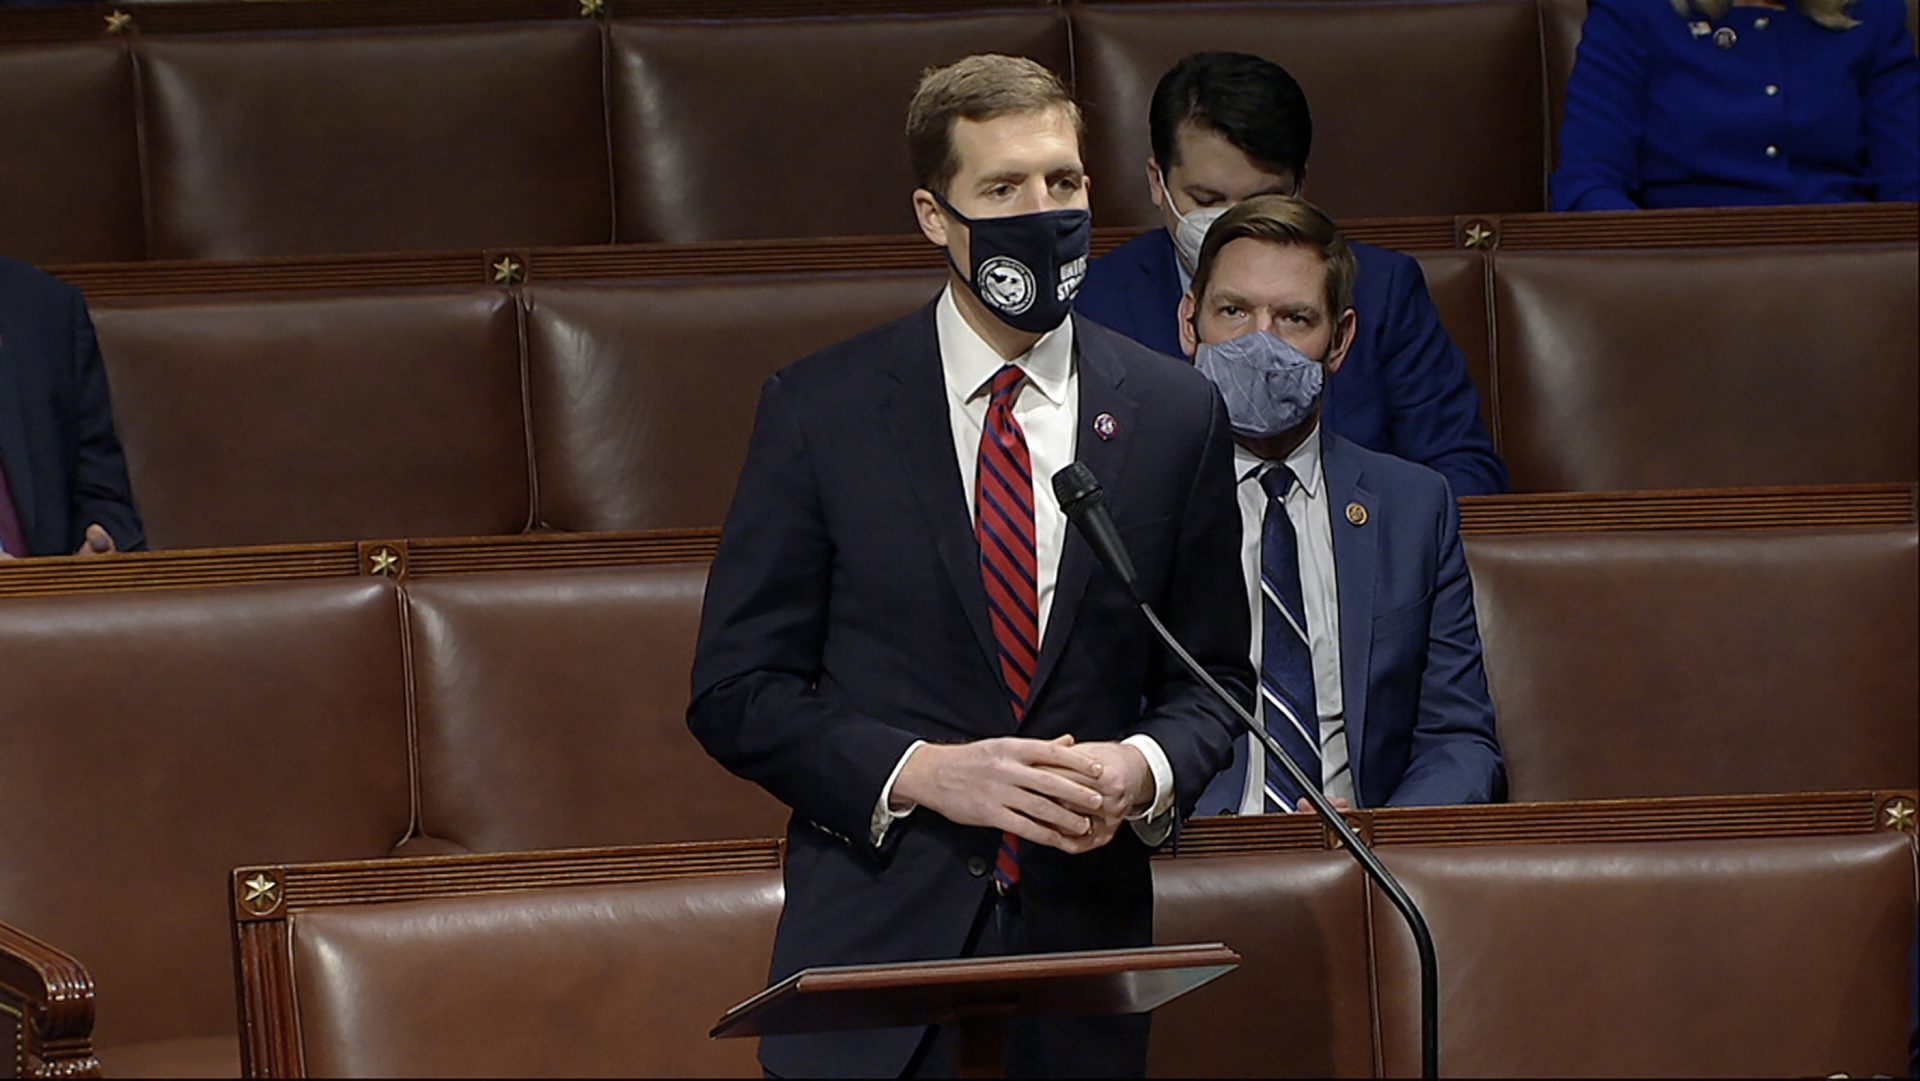 In this image from video, Rep. Conor Lamb, D-Pa., speaks as the House debates the objection to confirm the Electoral College vote from Pennsylvania, at the U.S. Capitol early Thursday, Jan. 7, 2021.